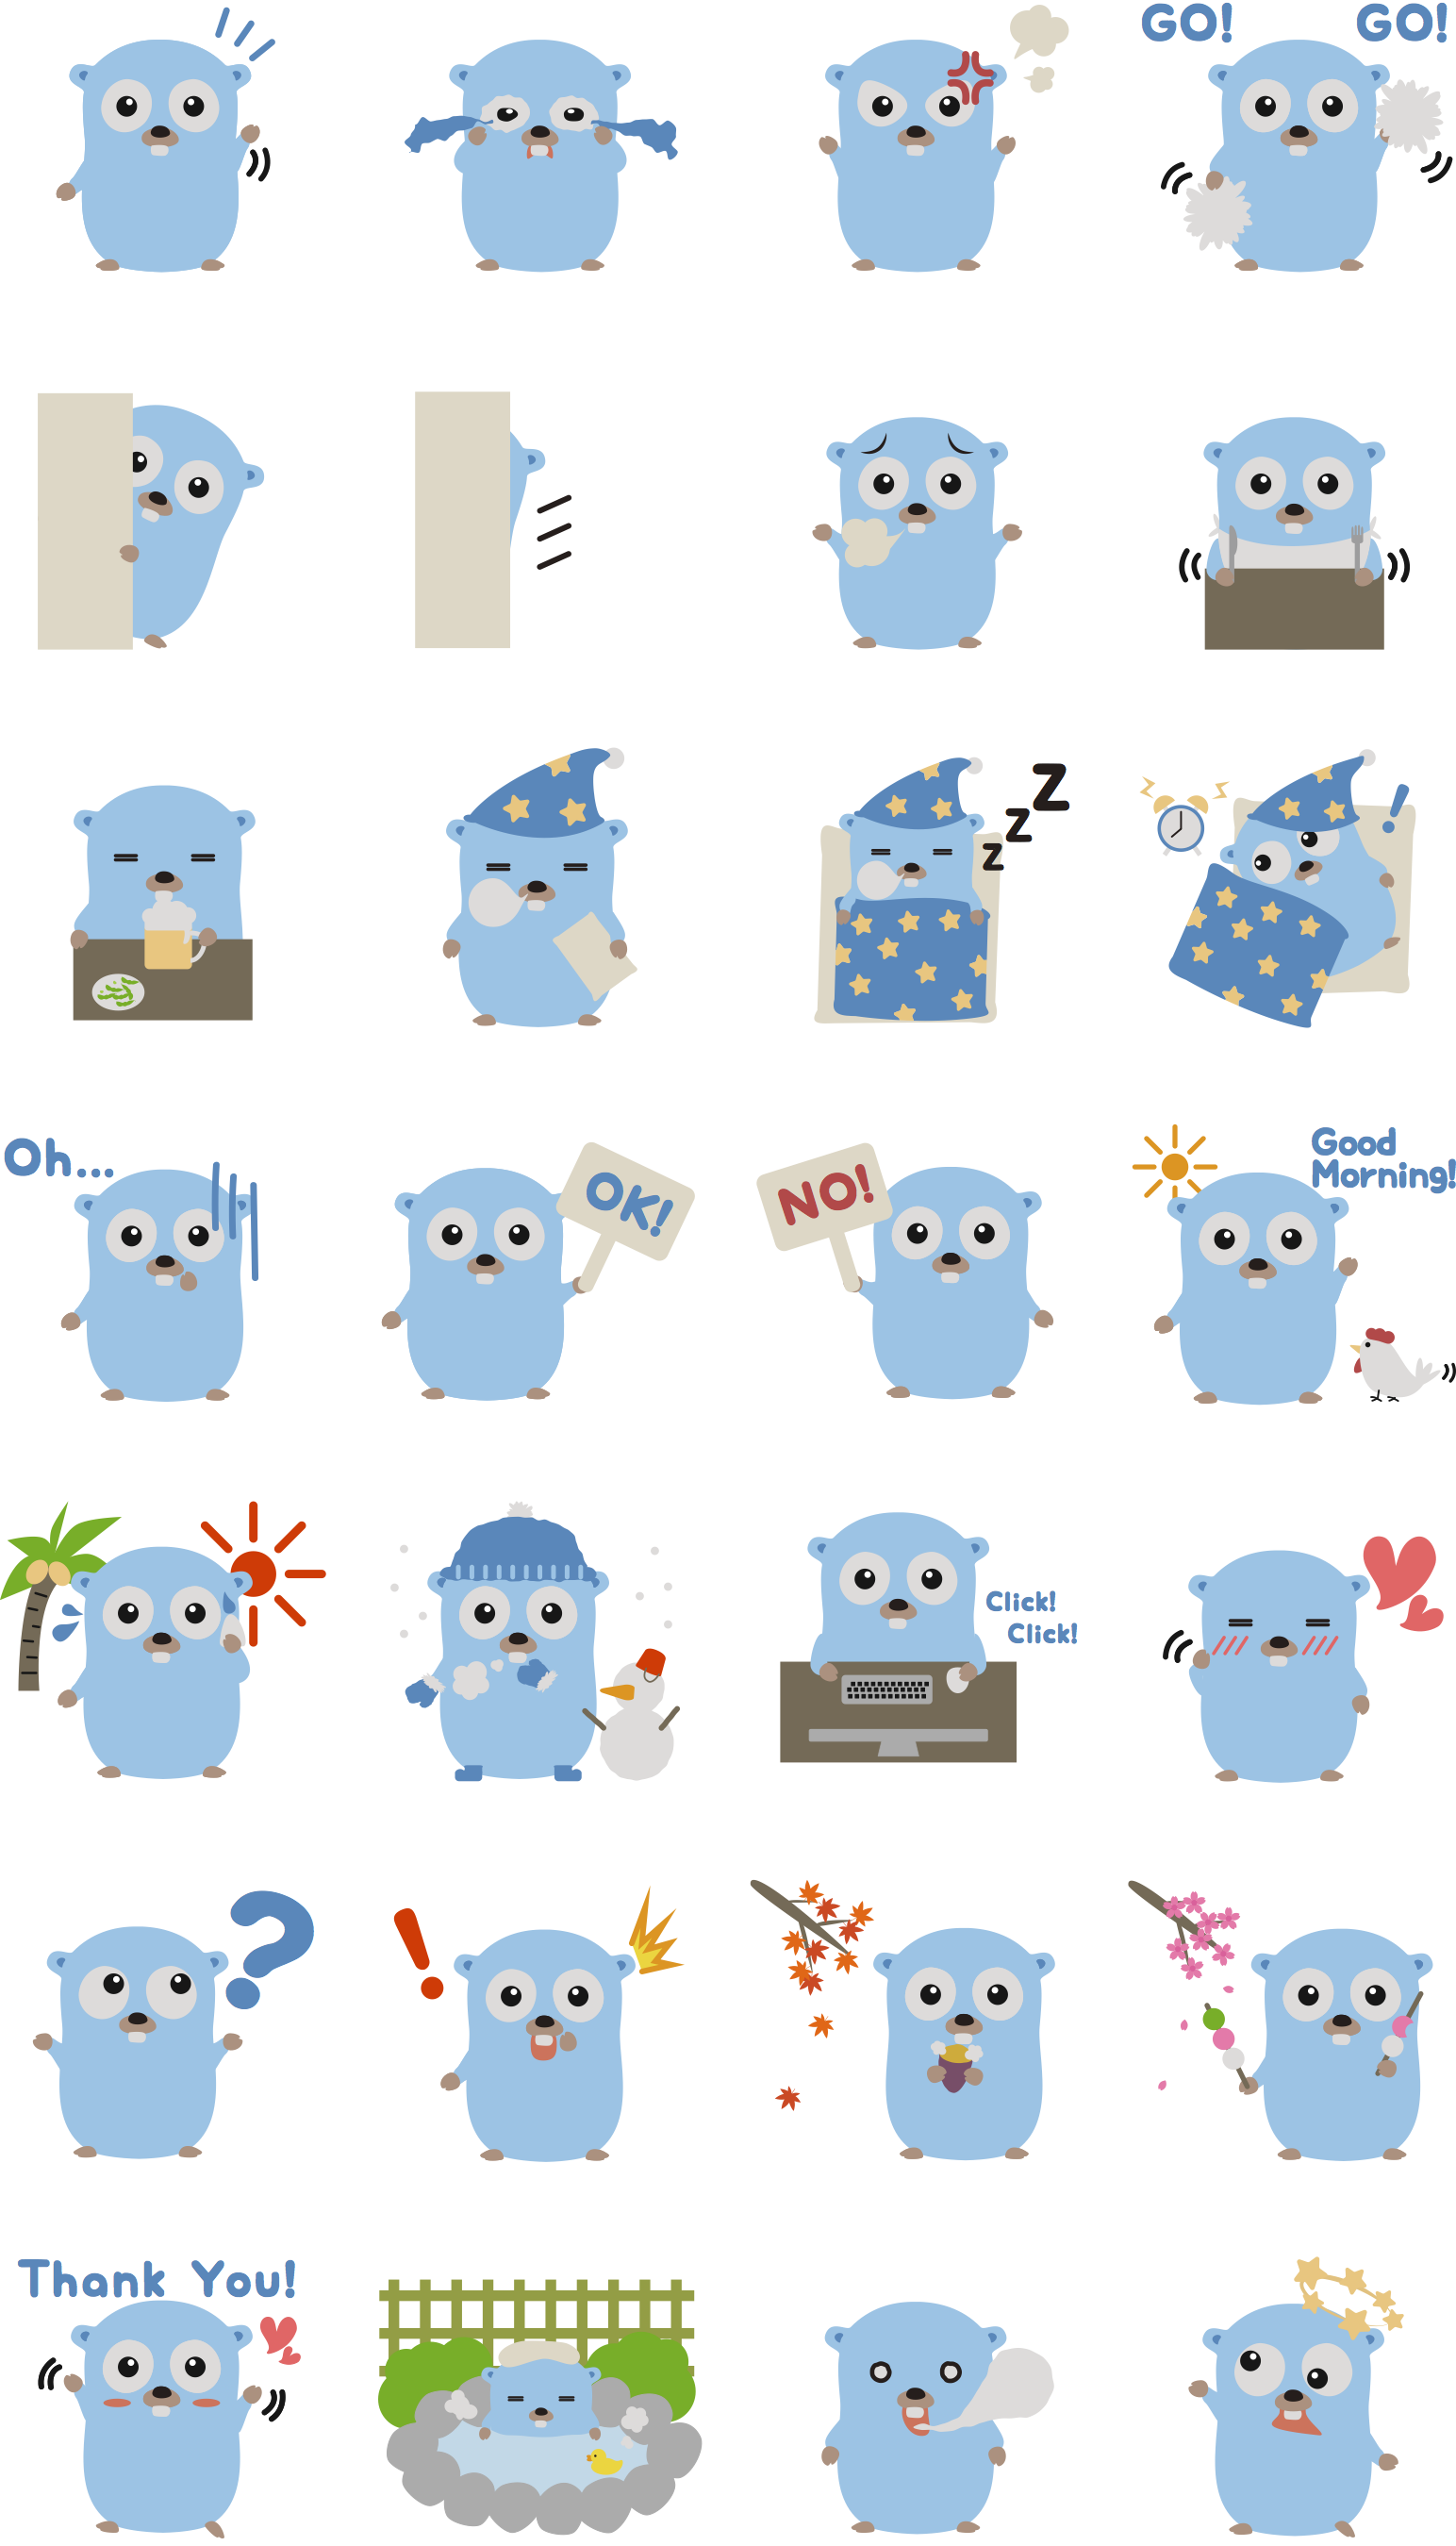 stickers.png